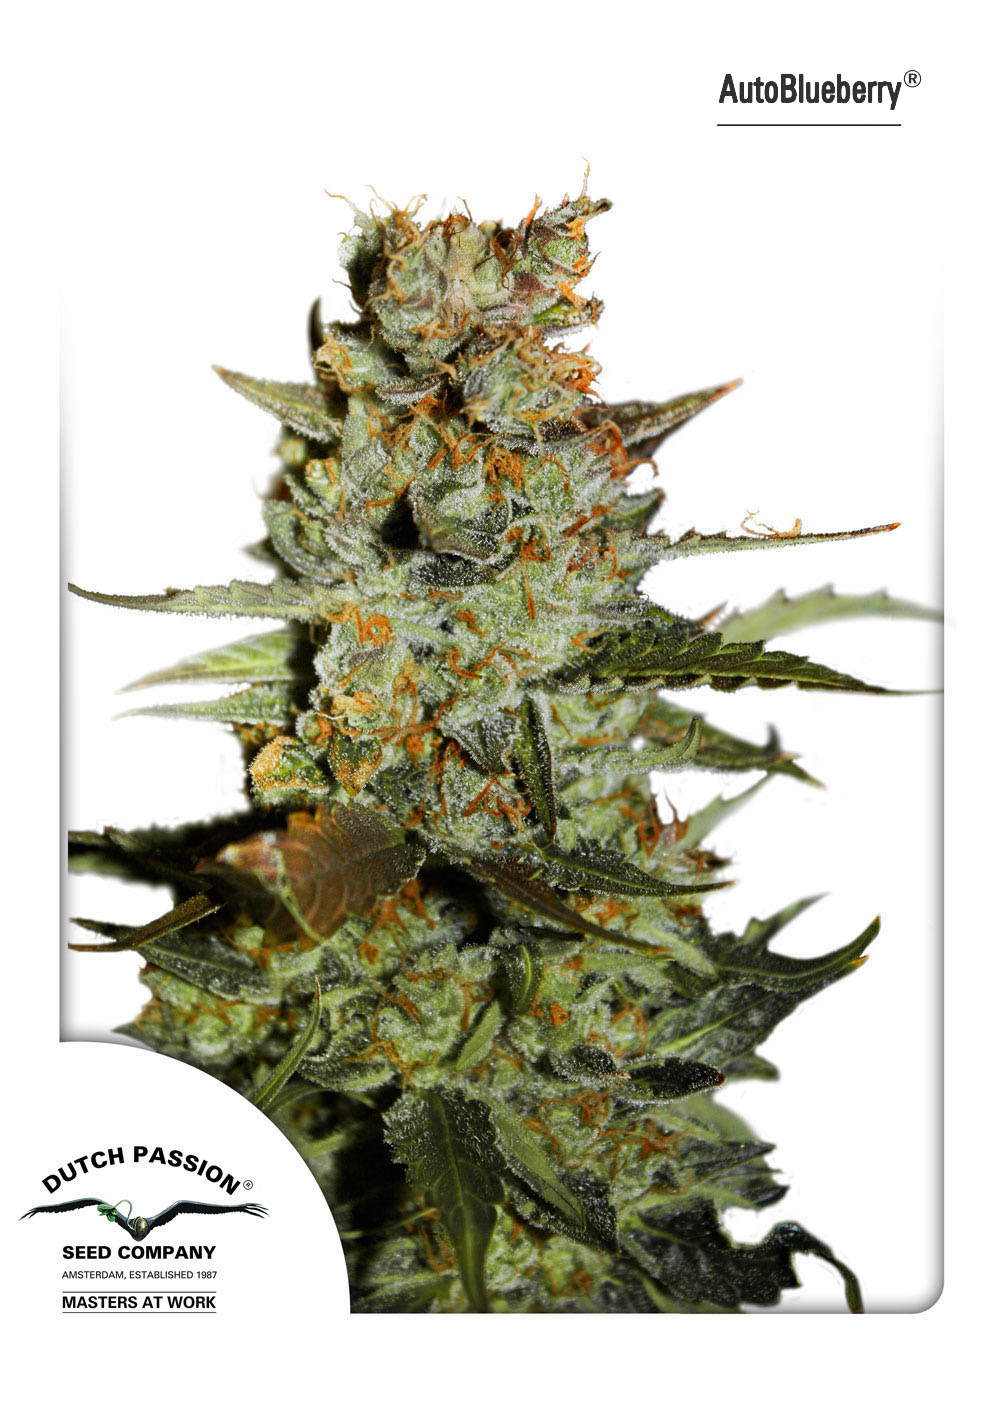 Recenzja Odmiany AutoBlueberry® od Dutch Passion, Dutch Seeds